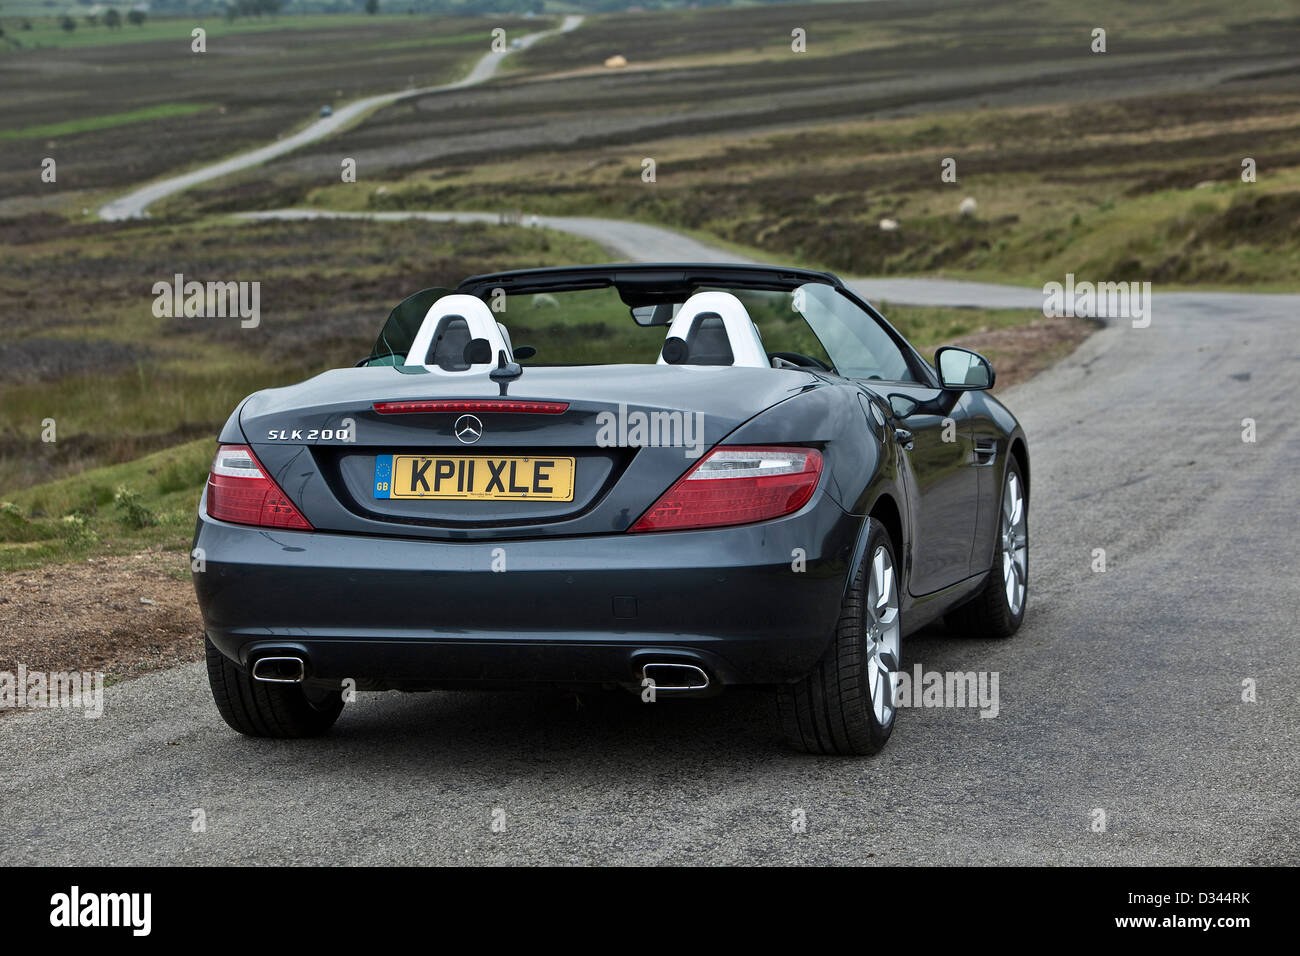 black mercedes slk 200 convertible car in rural pickering uk 28 06 stock photo royalty free. Black Bedroom Furniture Sets. Home Design Ideas